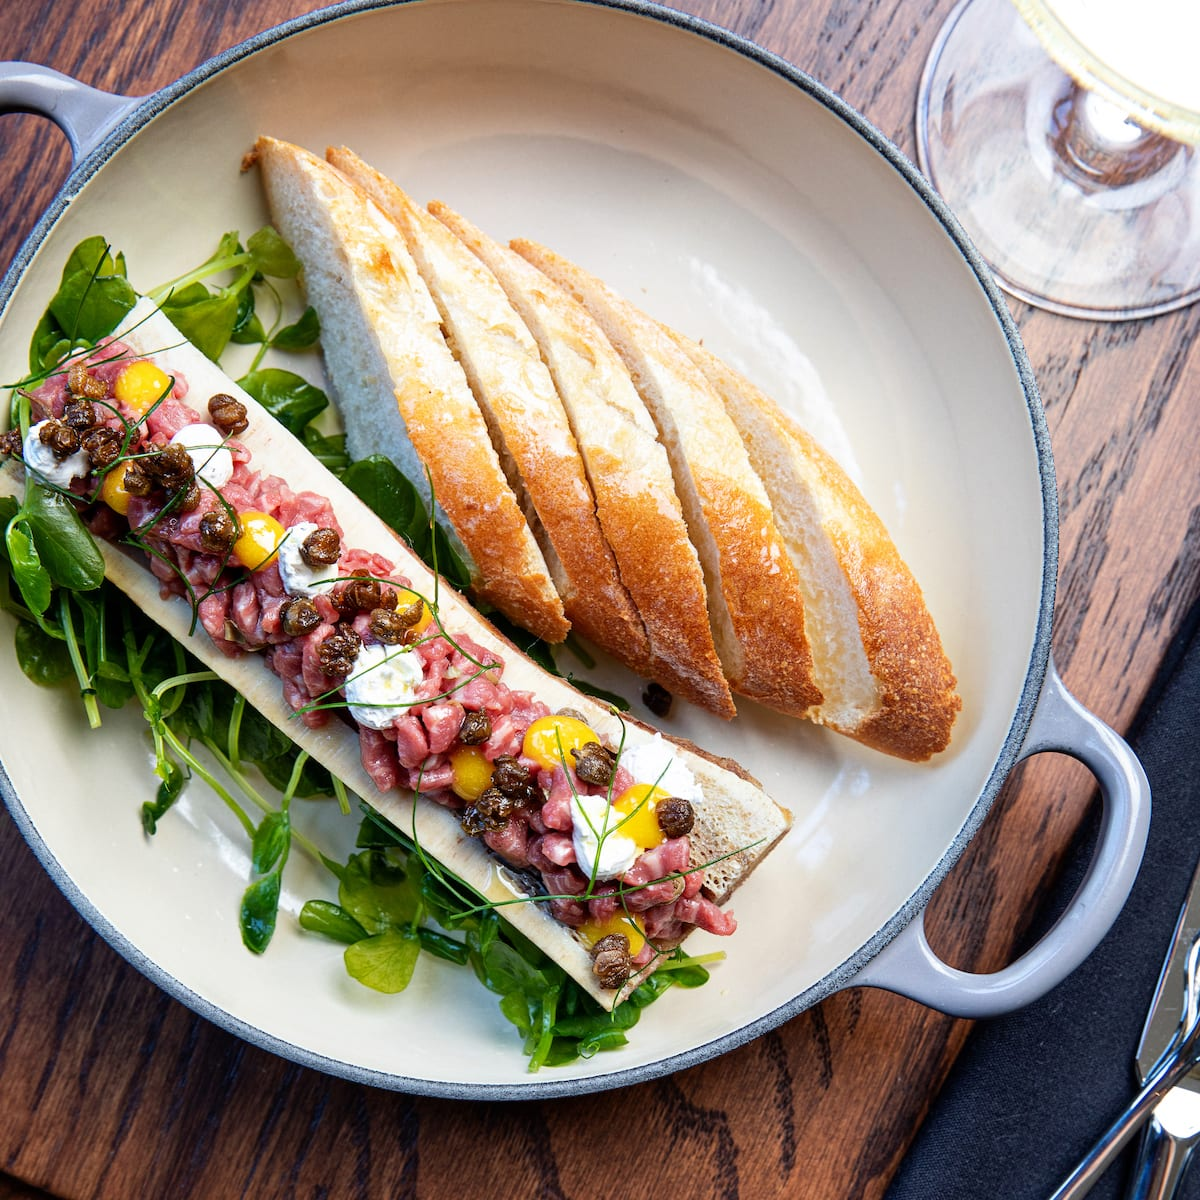 First Look at The Menu of Charleston's Brasserie La Banque